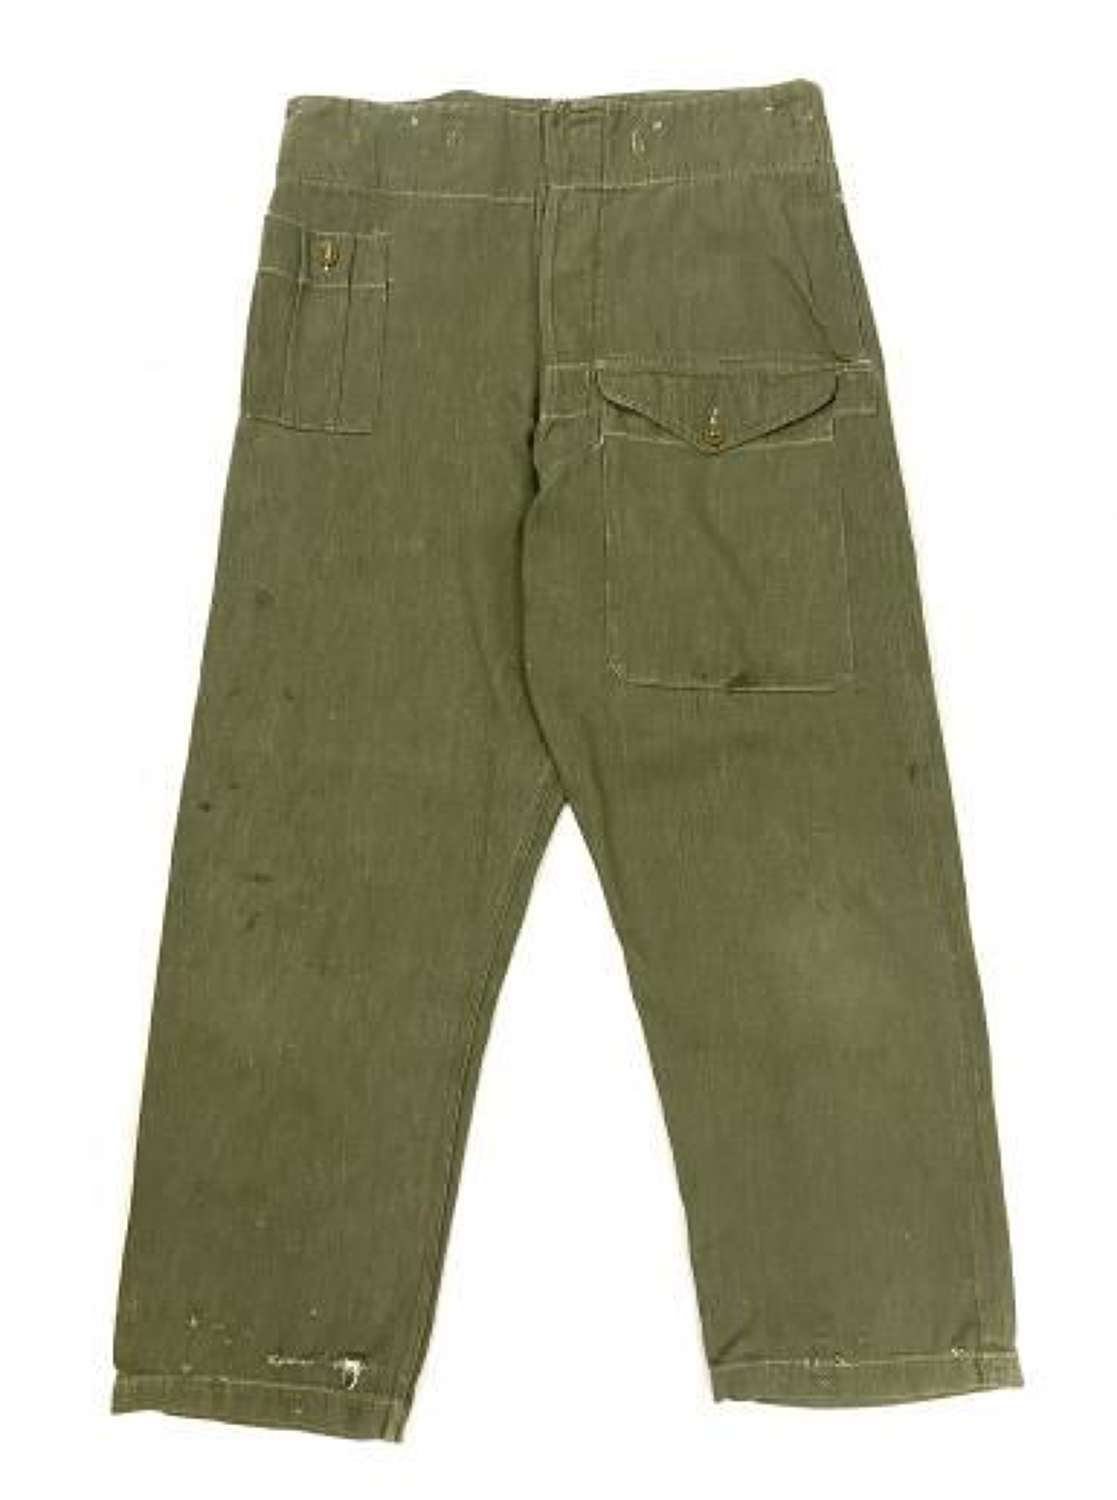 Original 1952 Dated British Army Denim Battledress Trousers - Size No. 4